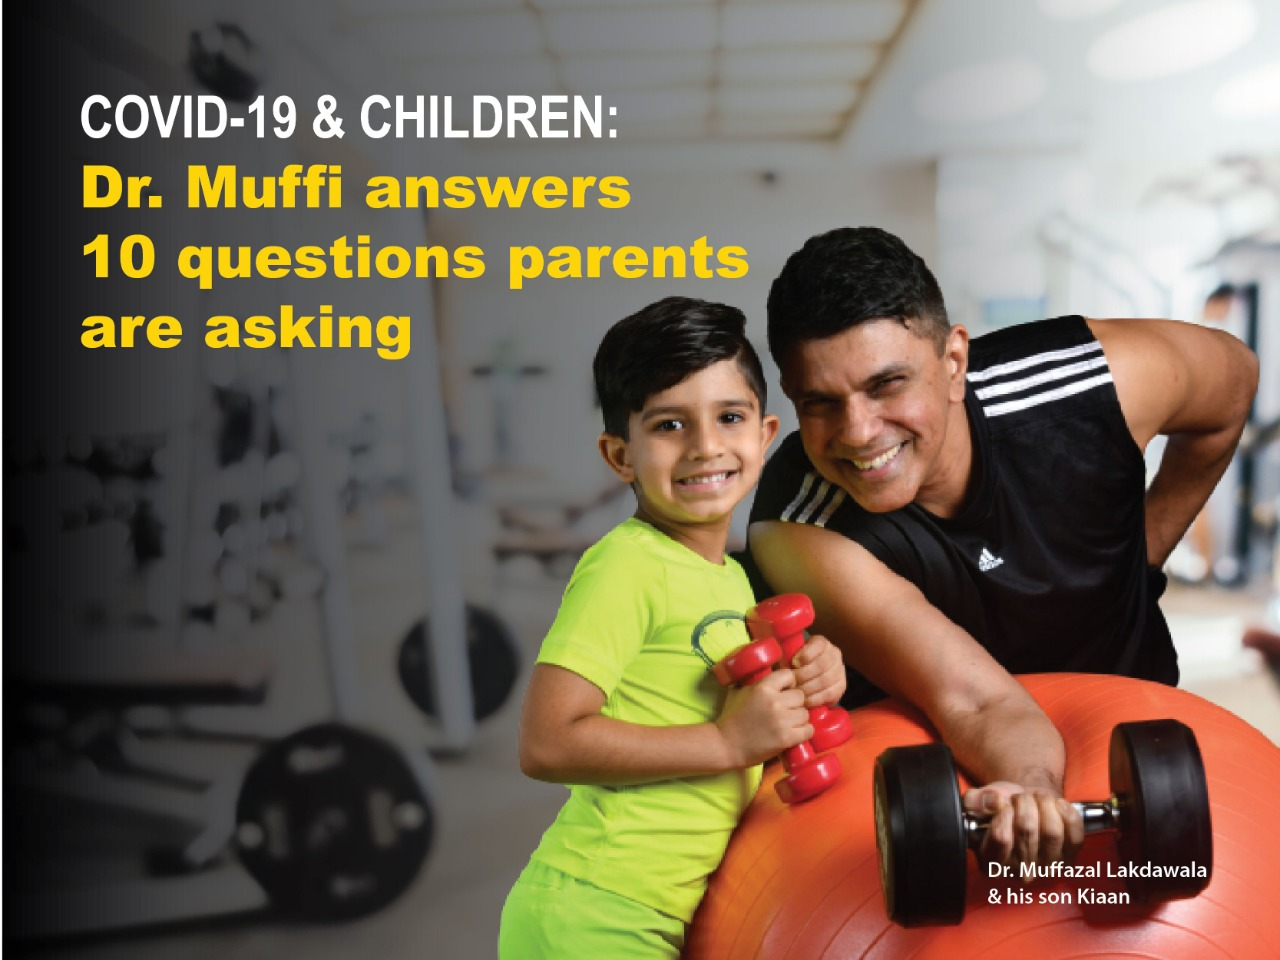 Dr. Muffi answers 10 questions parents are asking